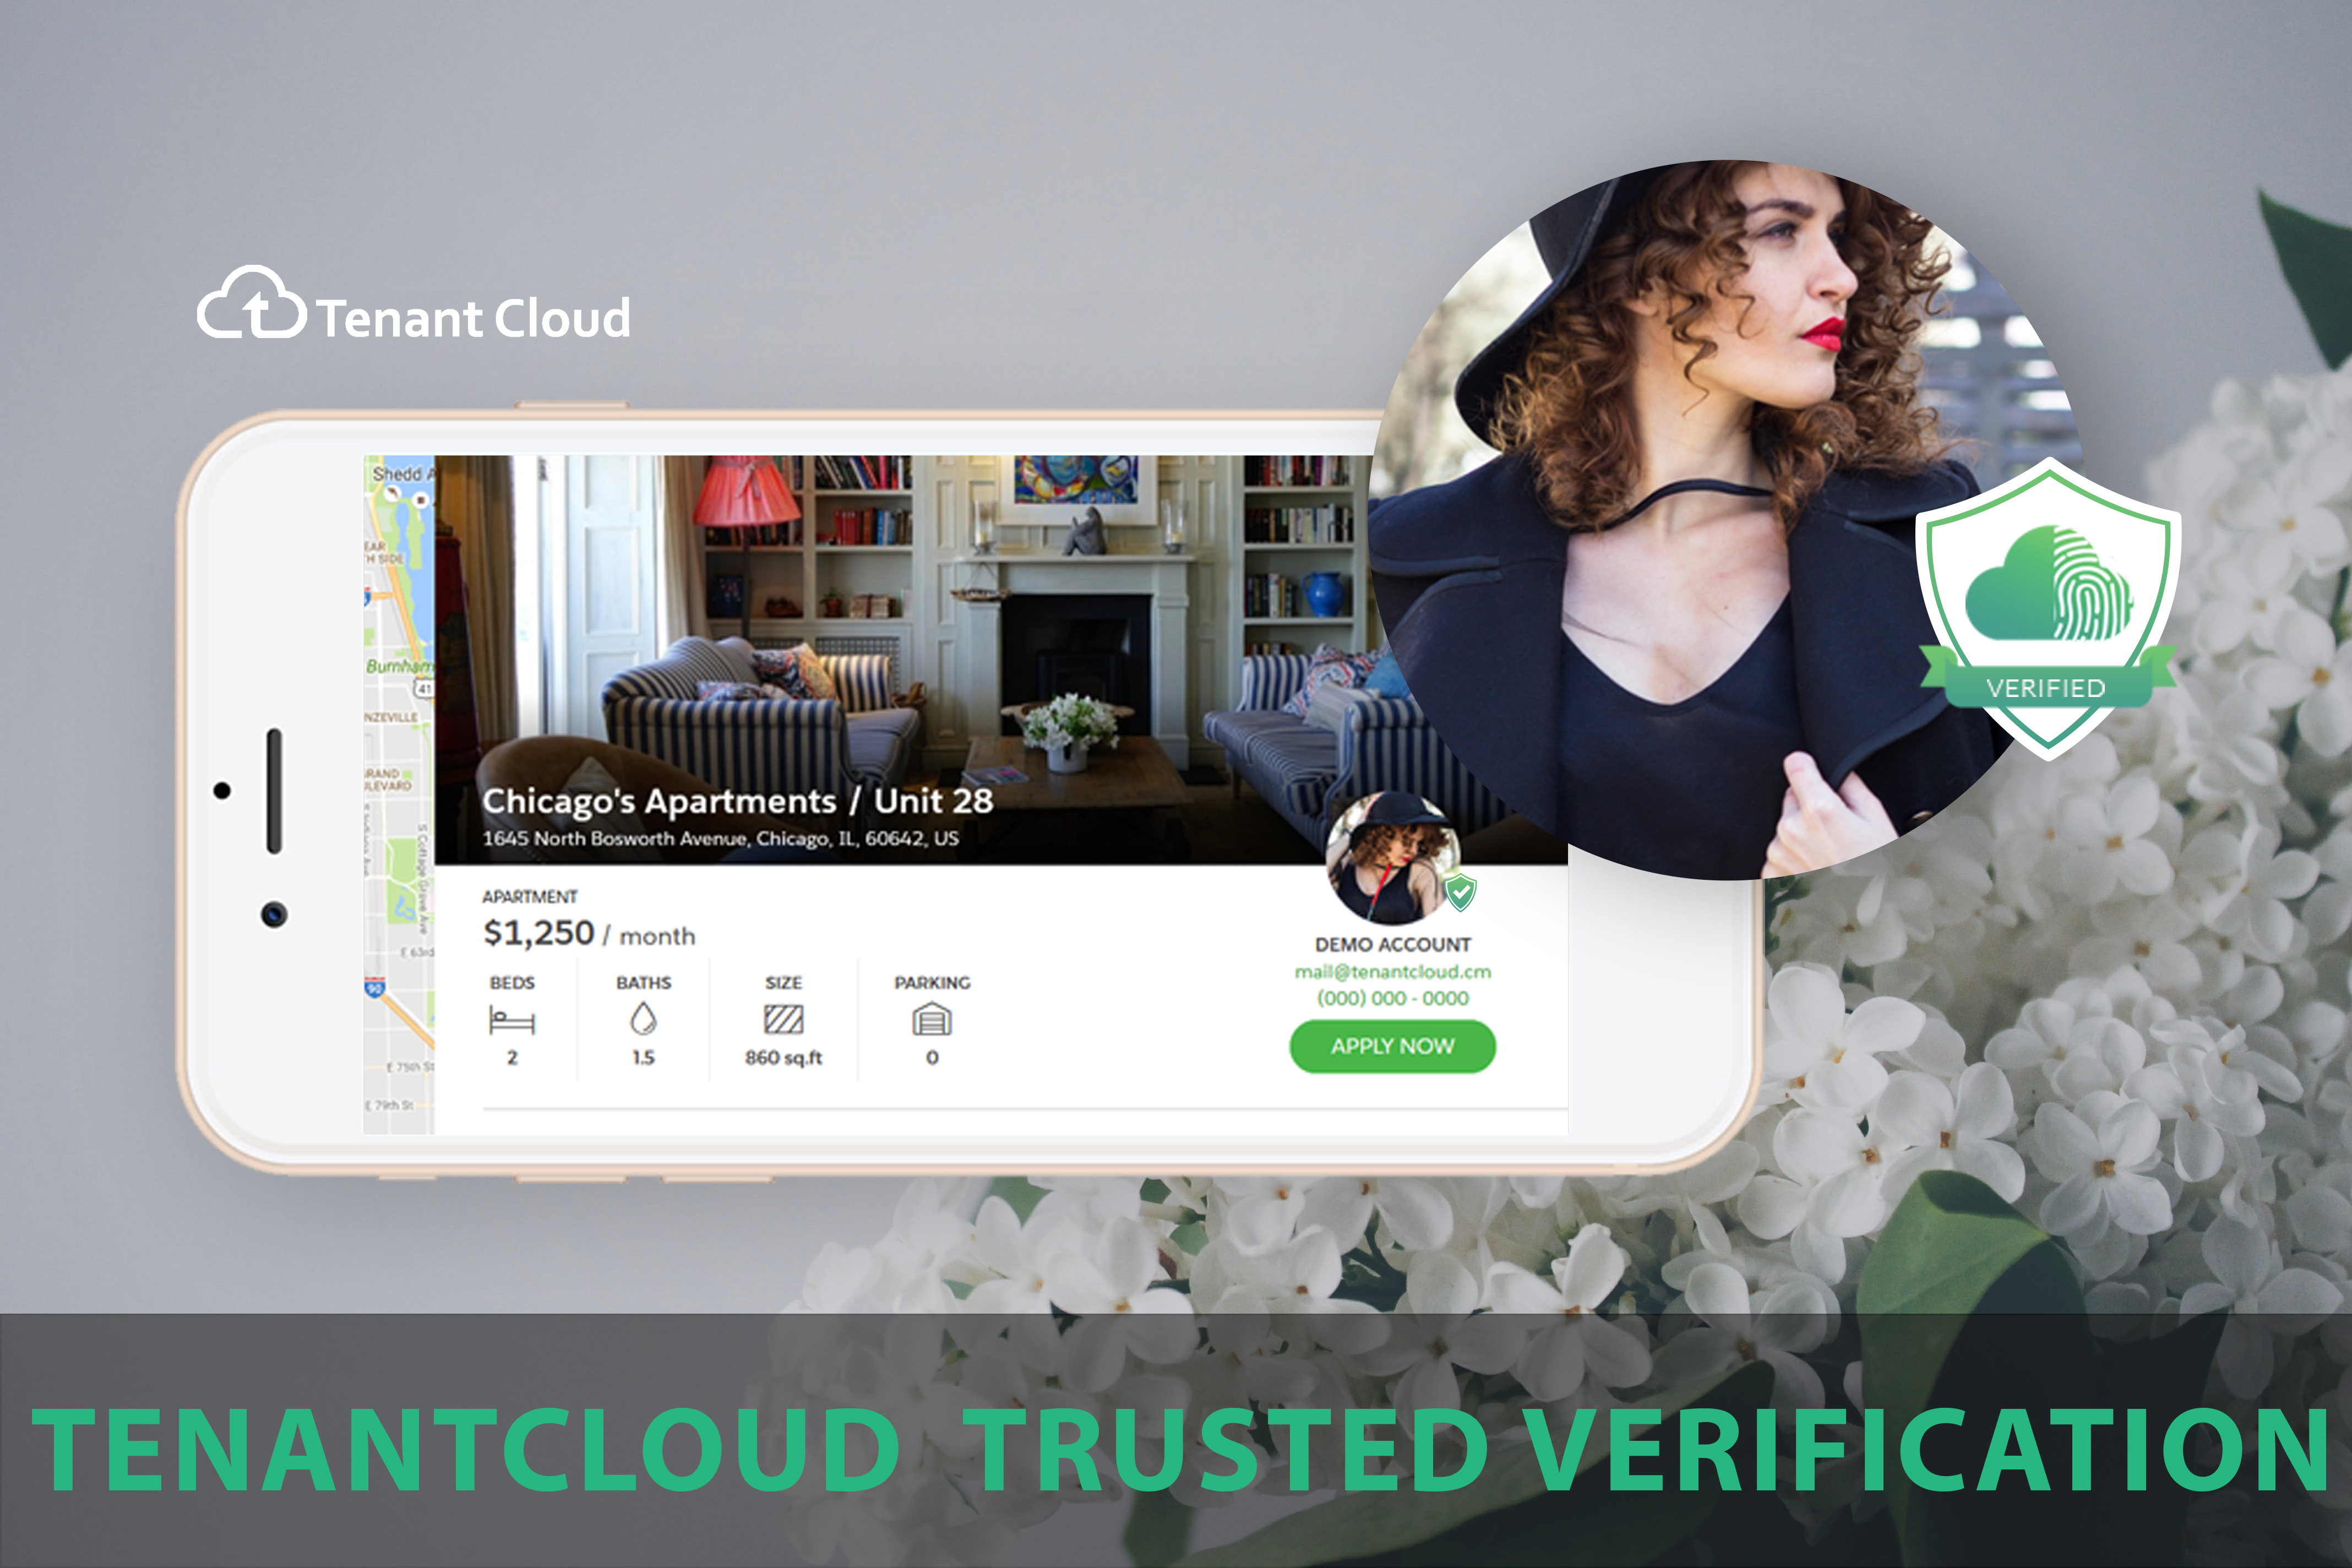 TenantCloud Trusted Verification